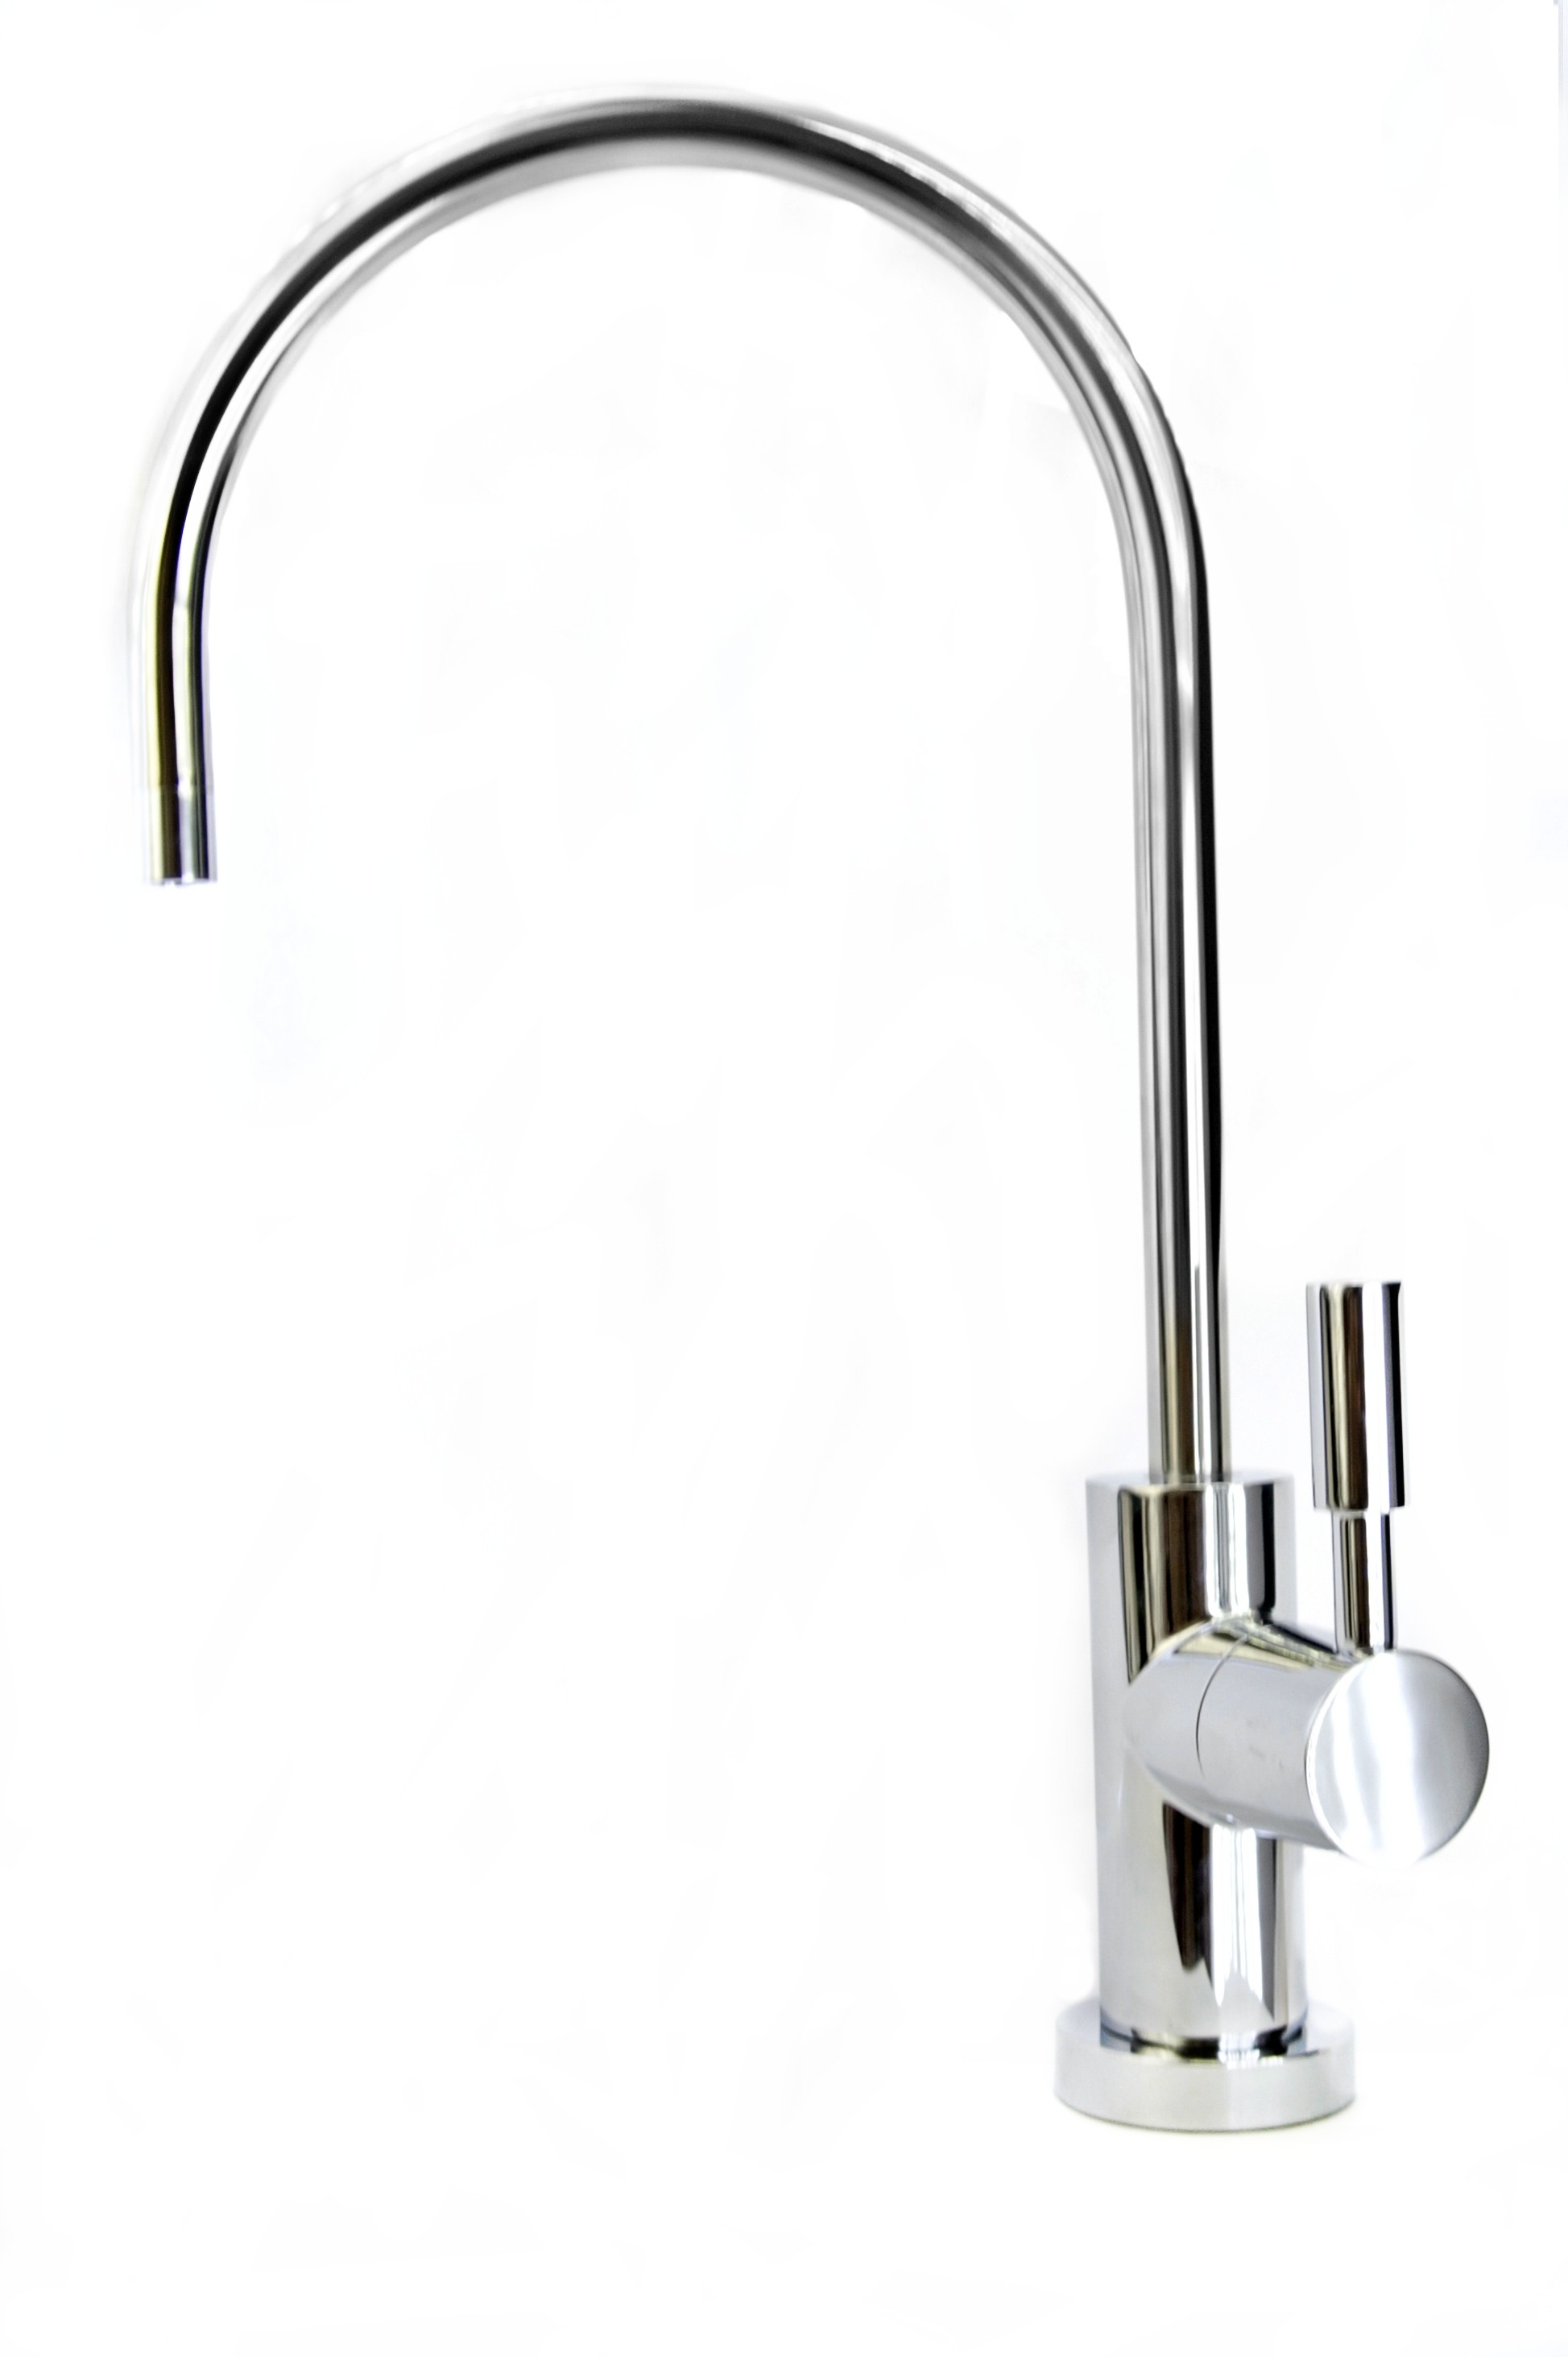 swan neck chrome ro water filter tap by finerfilters. Black Bedroom Furniture Sets. Home Design Ideas